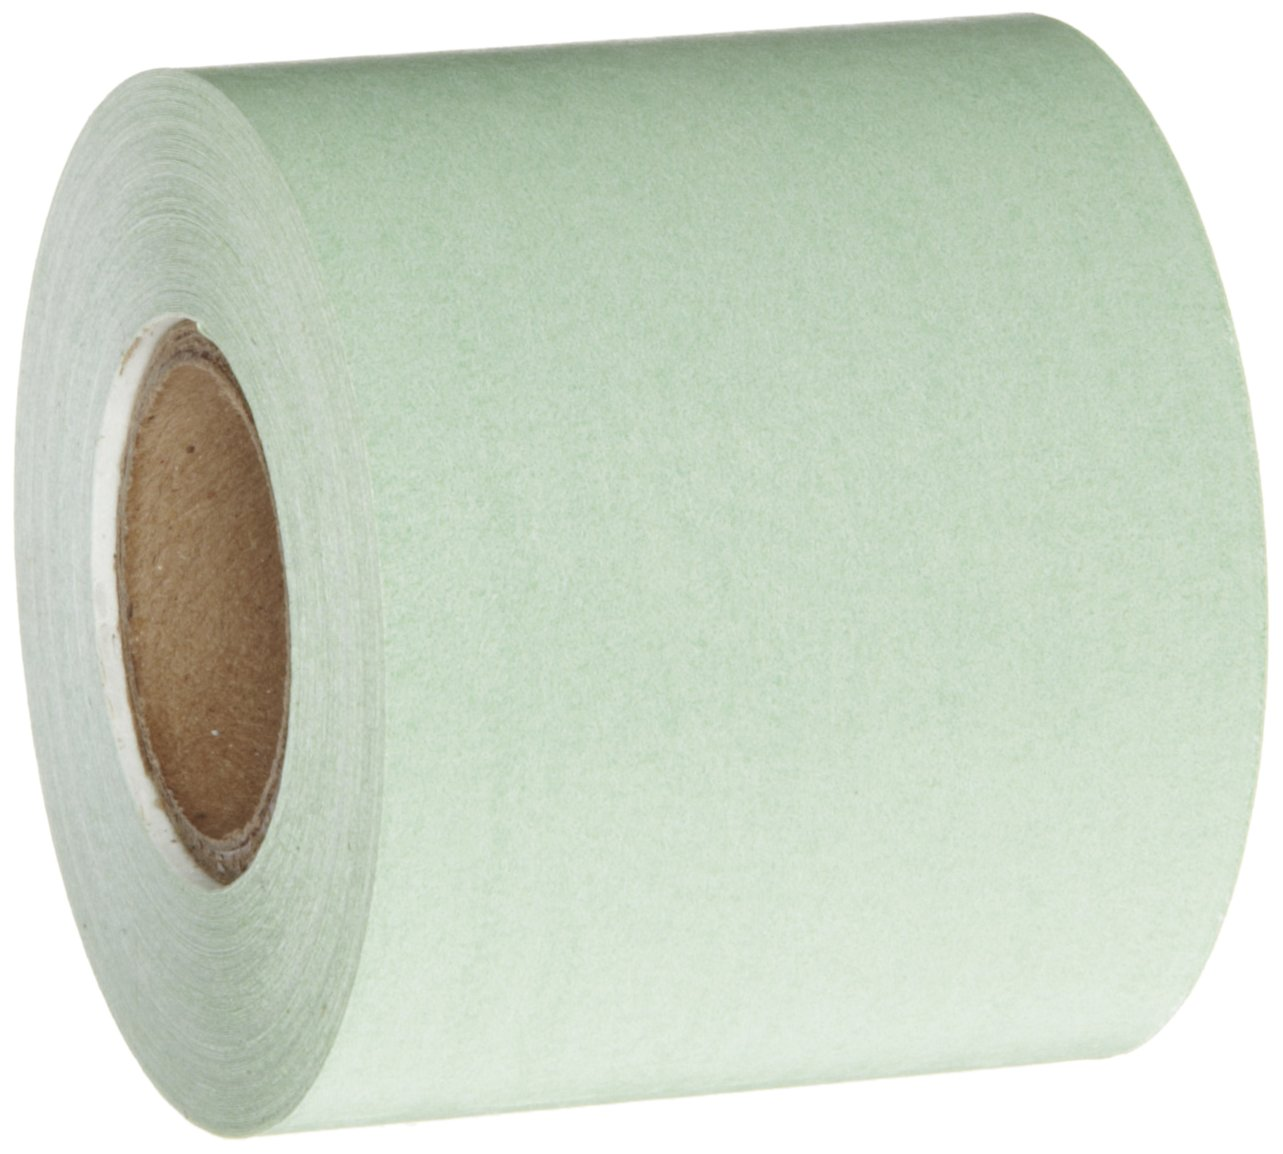 Roll of 500 500 Length x 2 Width 1 Core Inc For Color Coding and Marking 500 Length x 2 Width Roll Products 158-0006 Paper Adhesive Tape Lime 1 Core